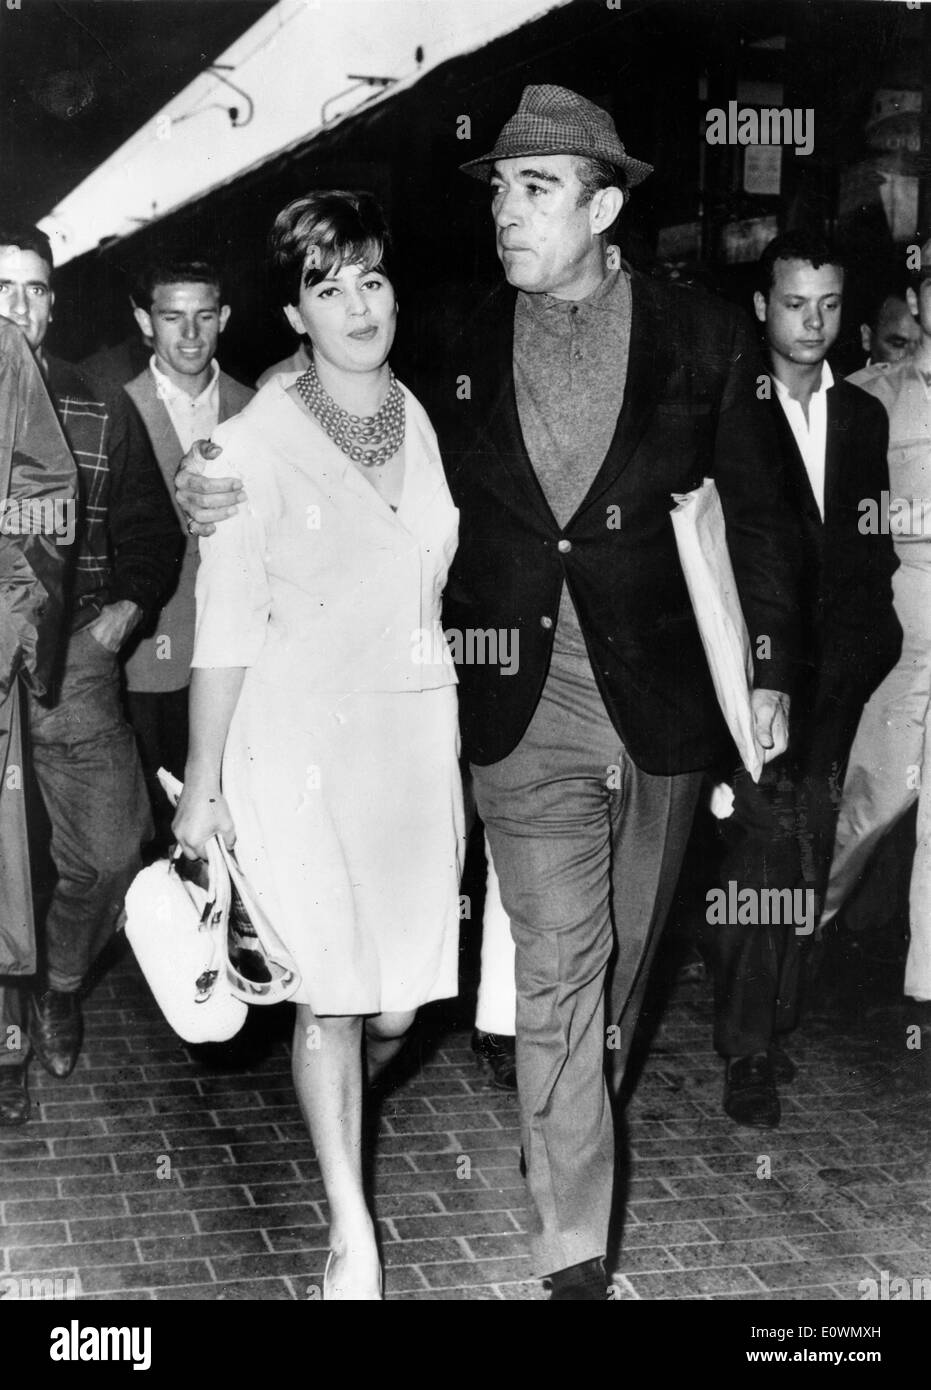 Actor Anthony Quinn Leave Italy With Wife Jolanda Stock Photo 69406697 Alamy